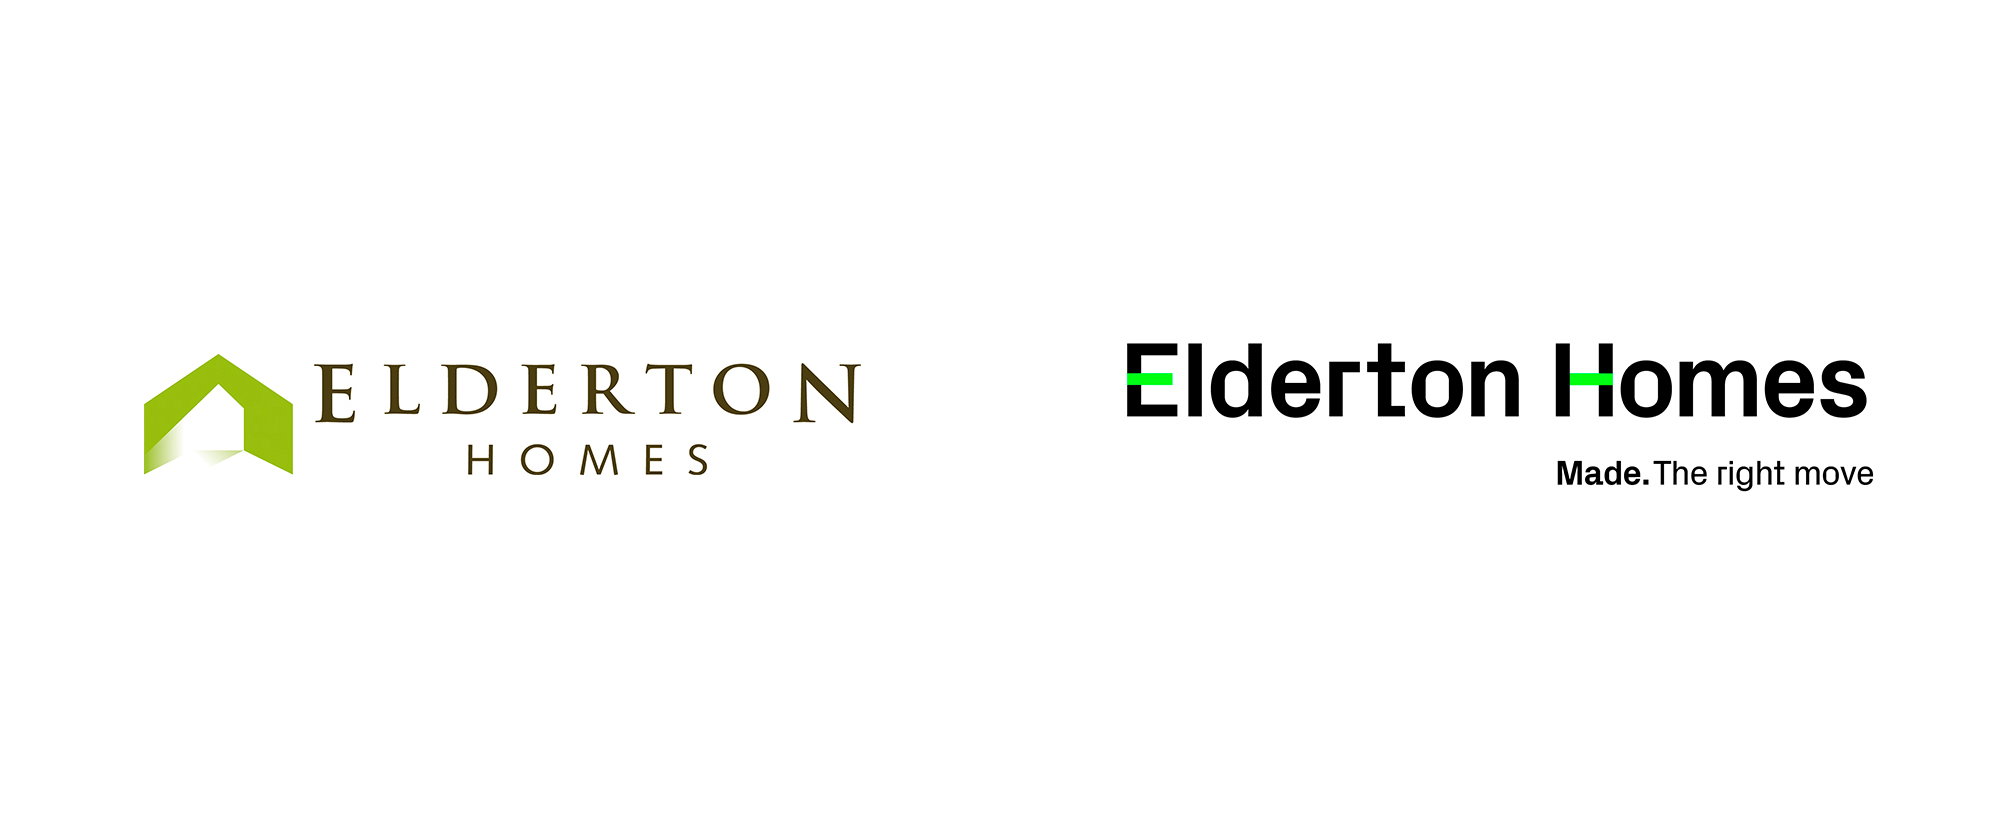 New Logo and Identity for Elderton Homes by Traffic